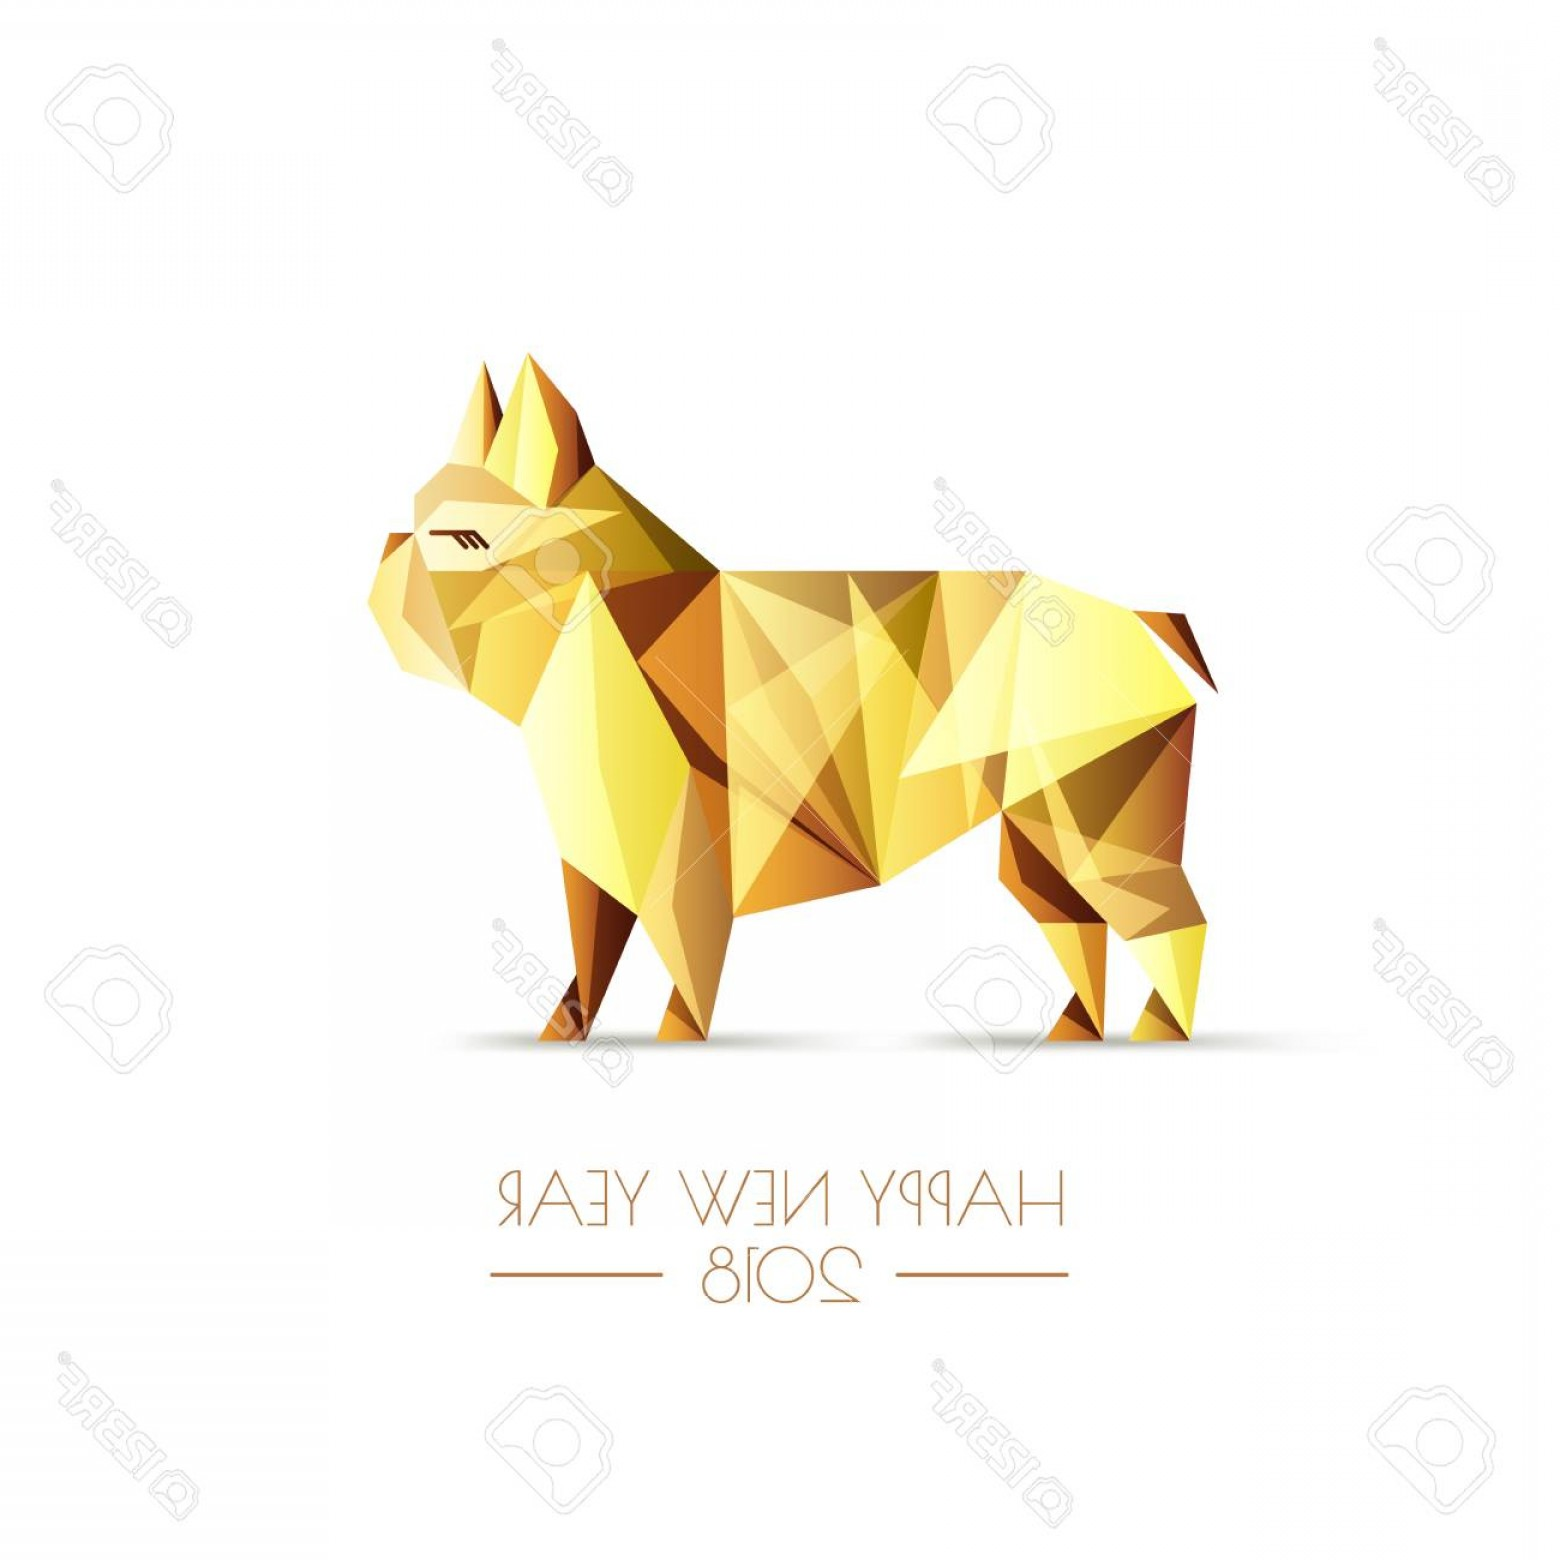 Corgi Vector Multicolor: Photostock Vector Happy Chinese New Year Vector Greeting Card Poster Banner With Golden Luxury Low Poly Dog Symbo